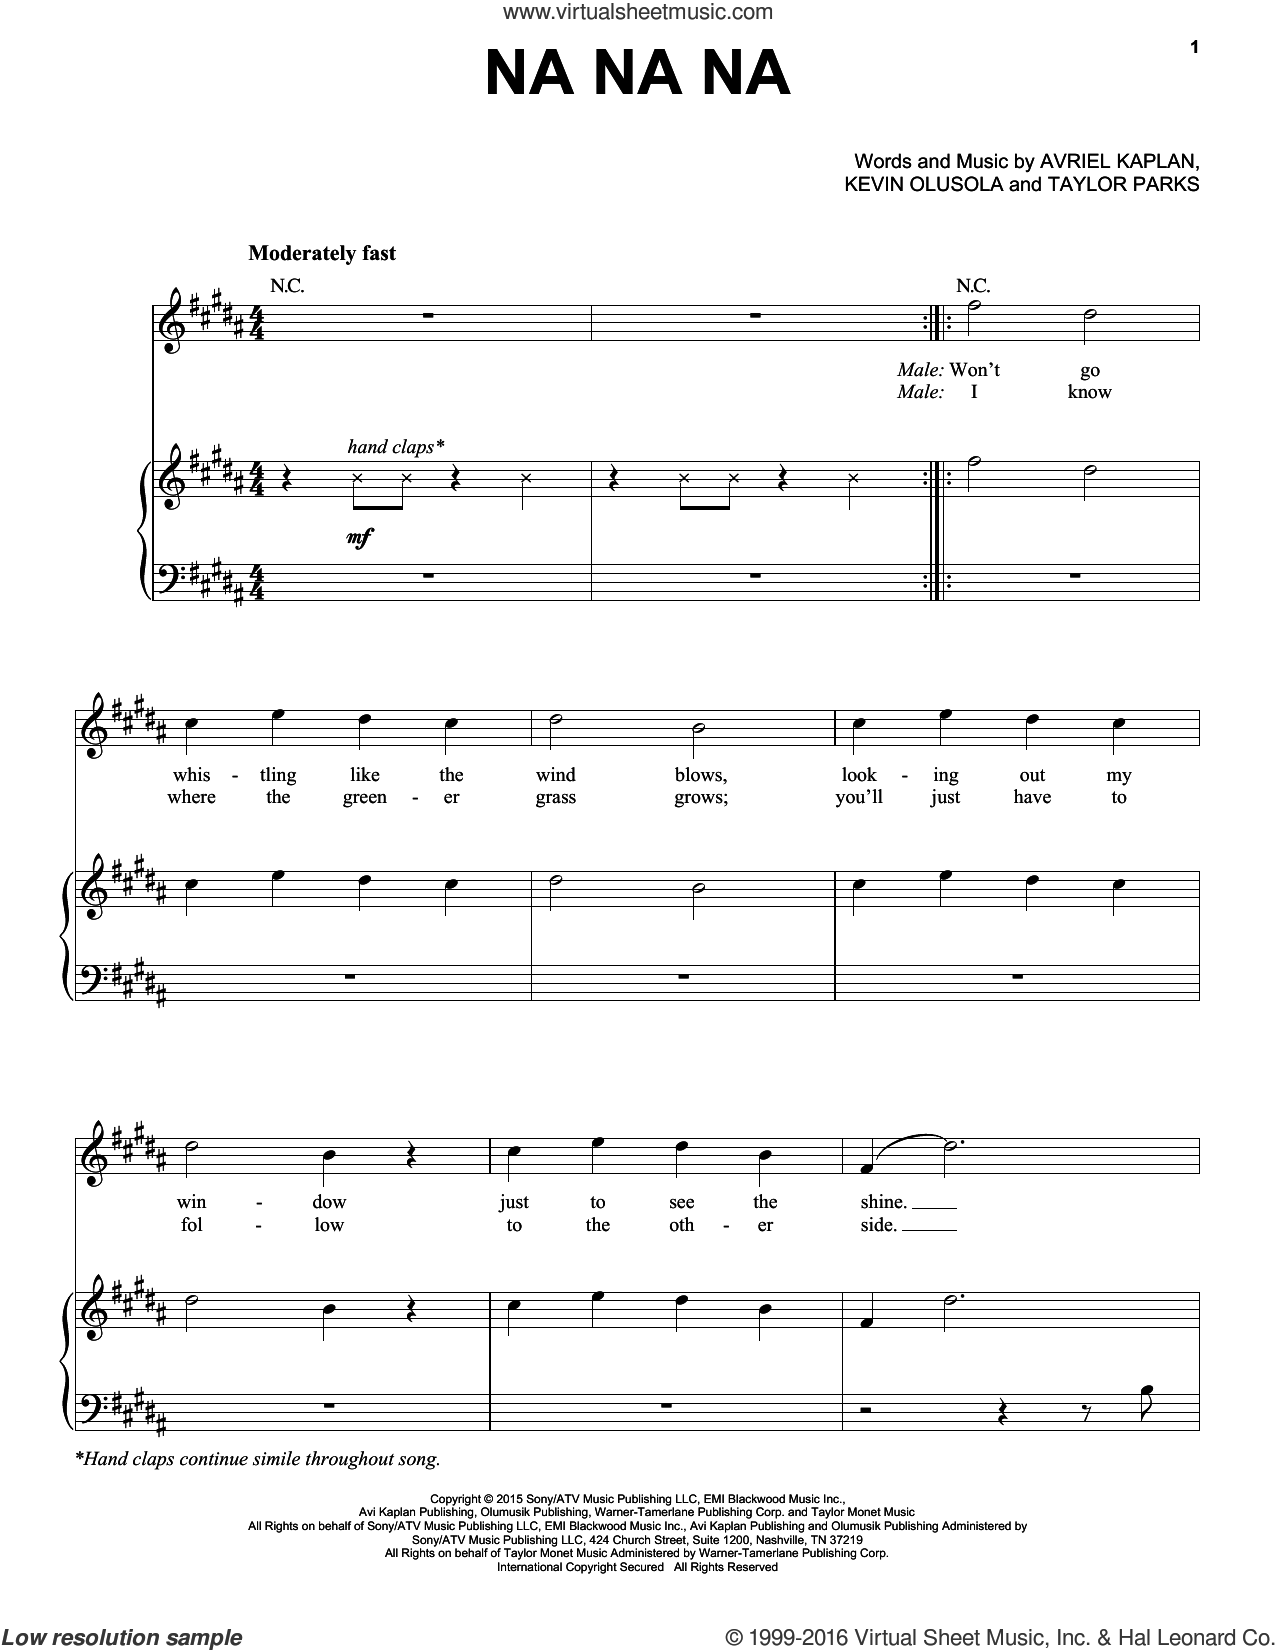 Na Na Na sheet music for voice, piano or guitar by Pentatonix, Avriel Kaplan, Kevin Olusola and Taylor Parks, intermediate skill level